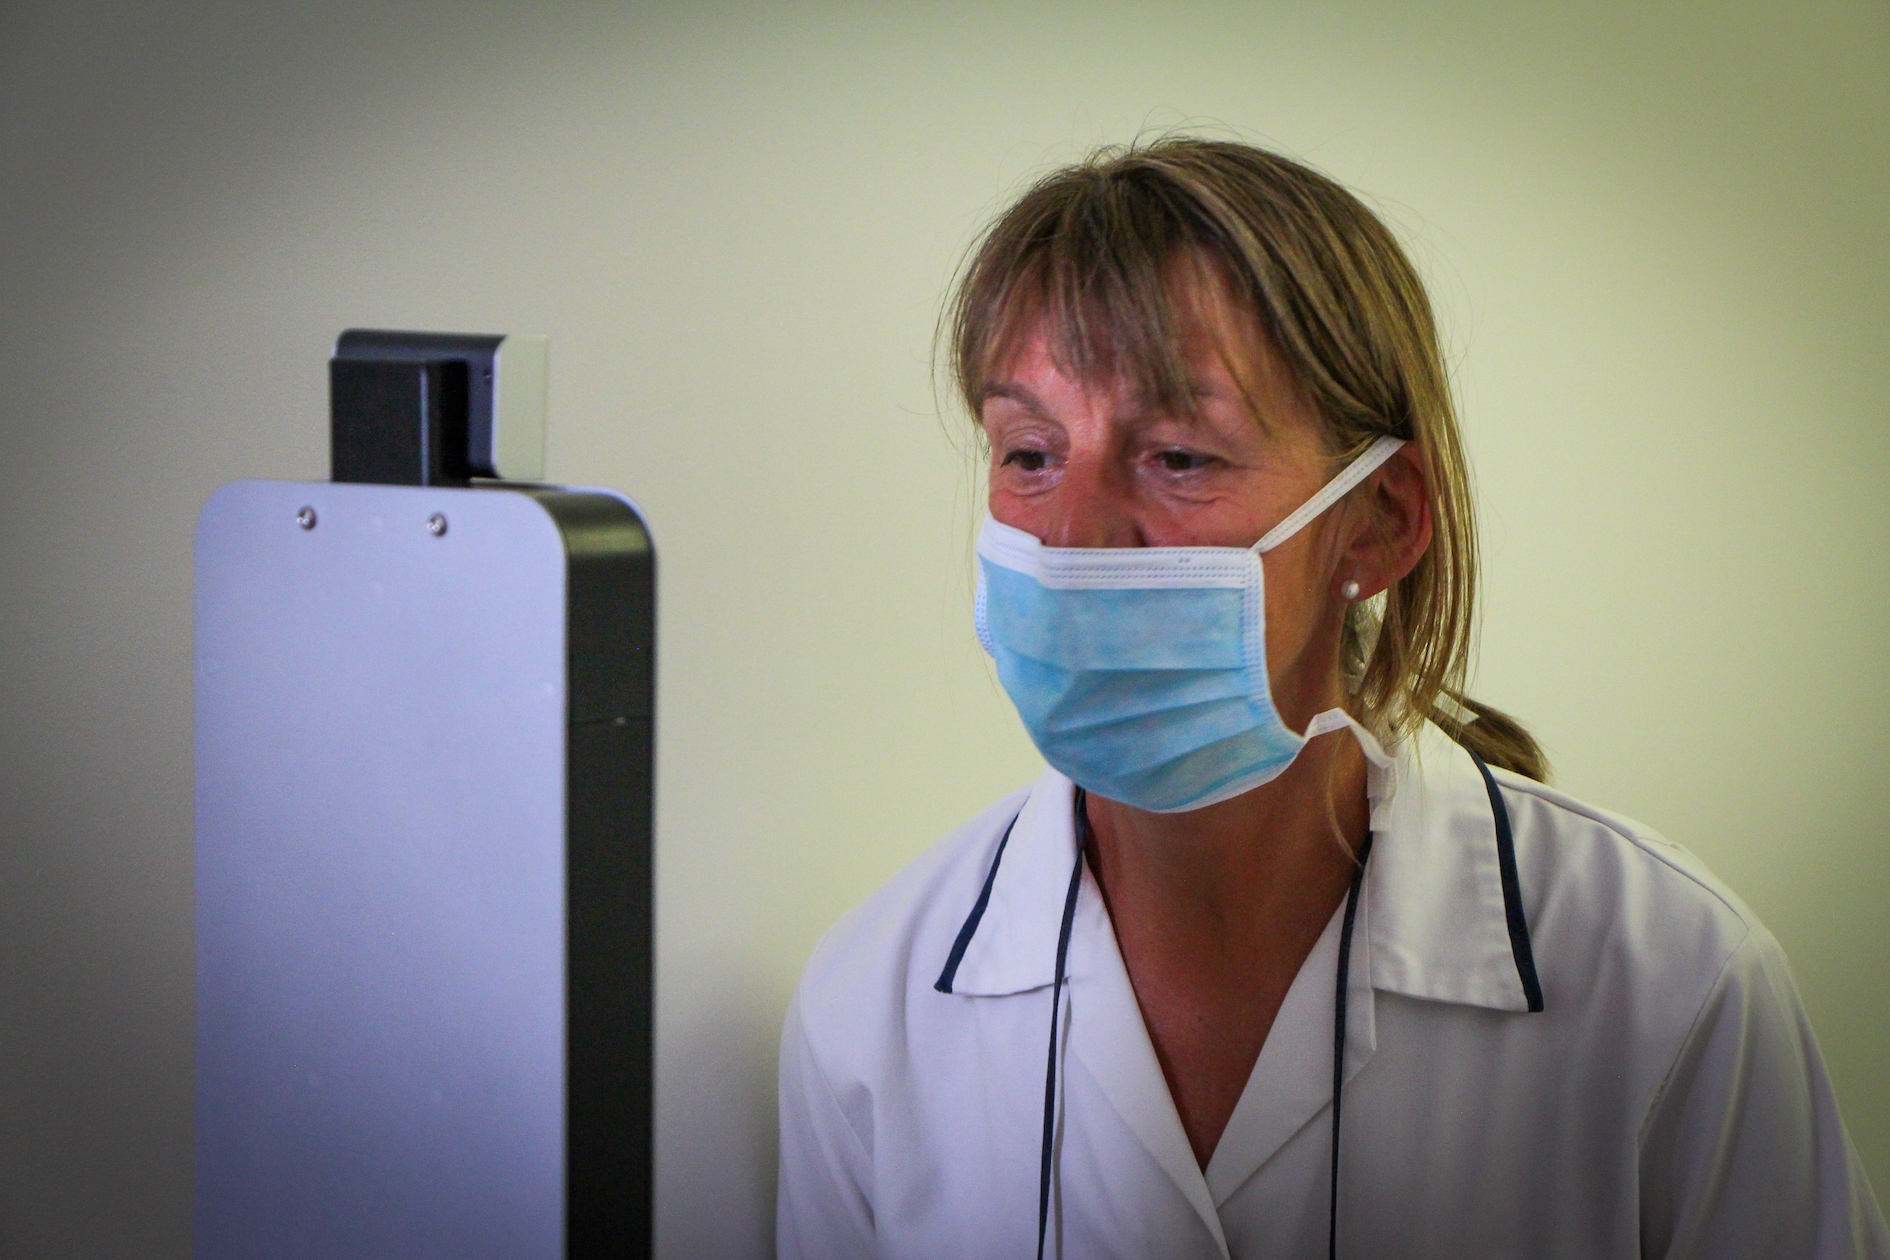 body temperature scan at a care home, wearing a mask, mask detection, temperature testing machine